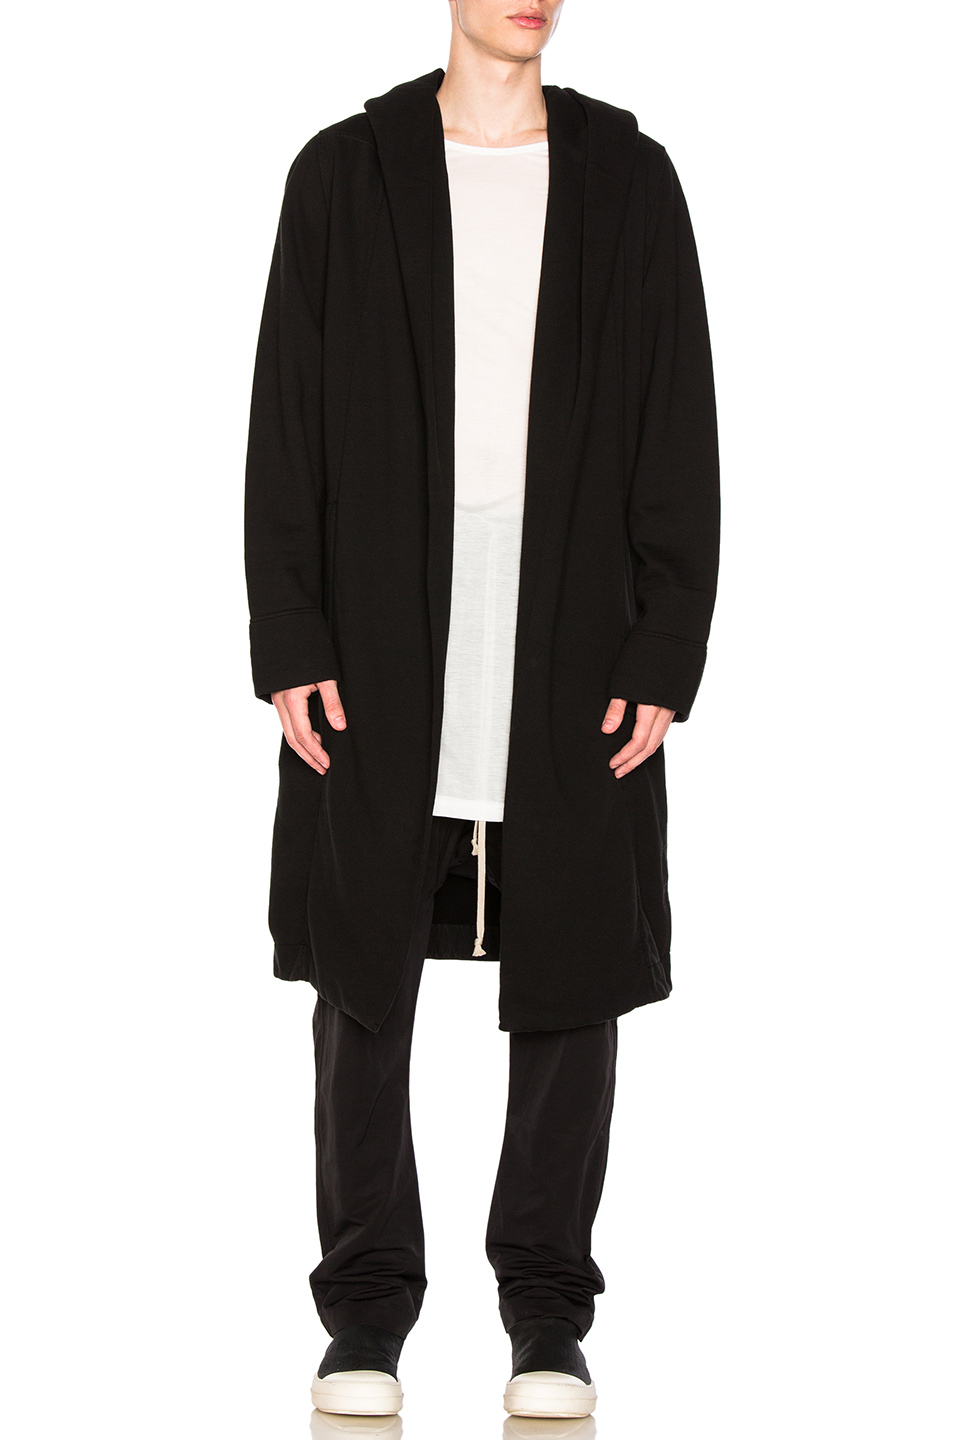 DRKSHDW by Rick Owens Spa Robe in Black